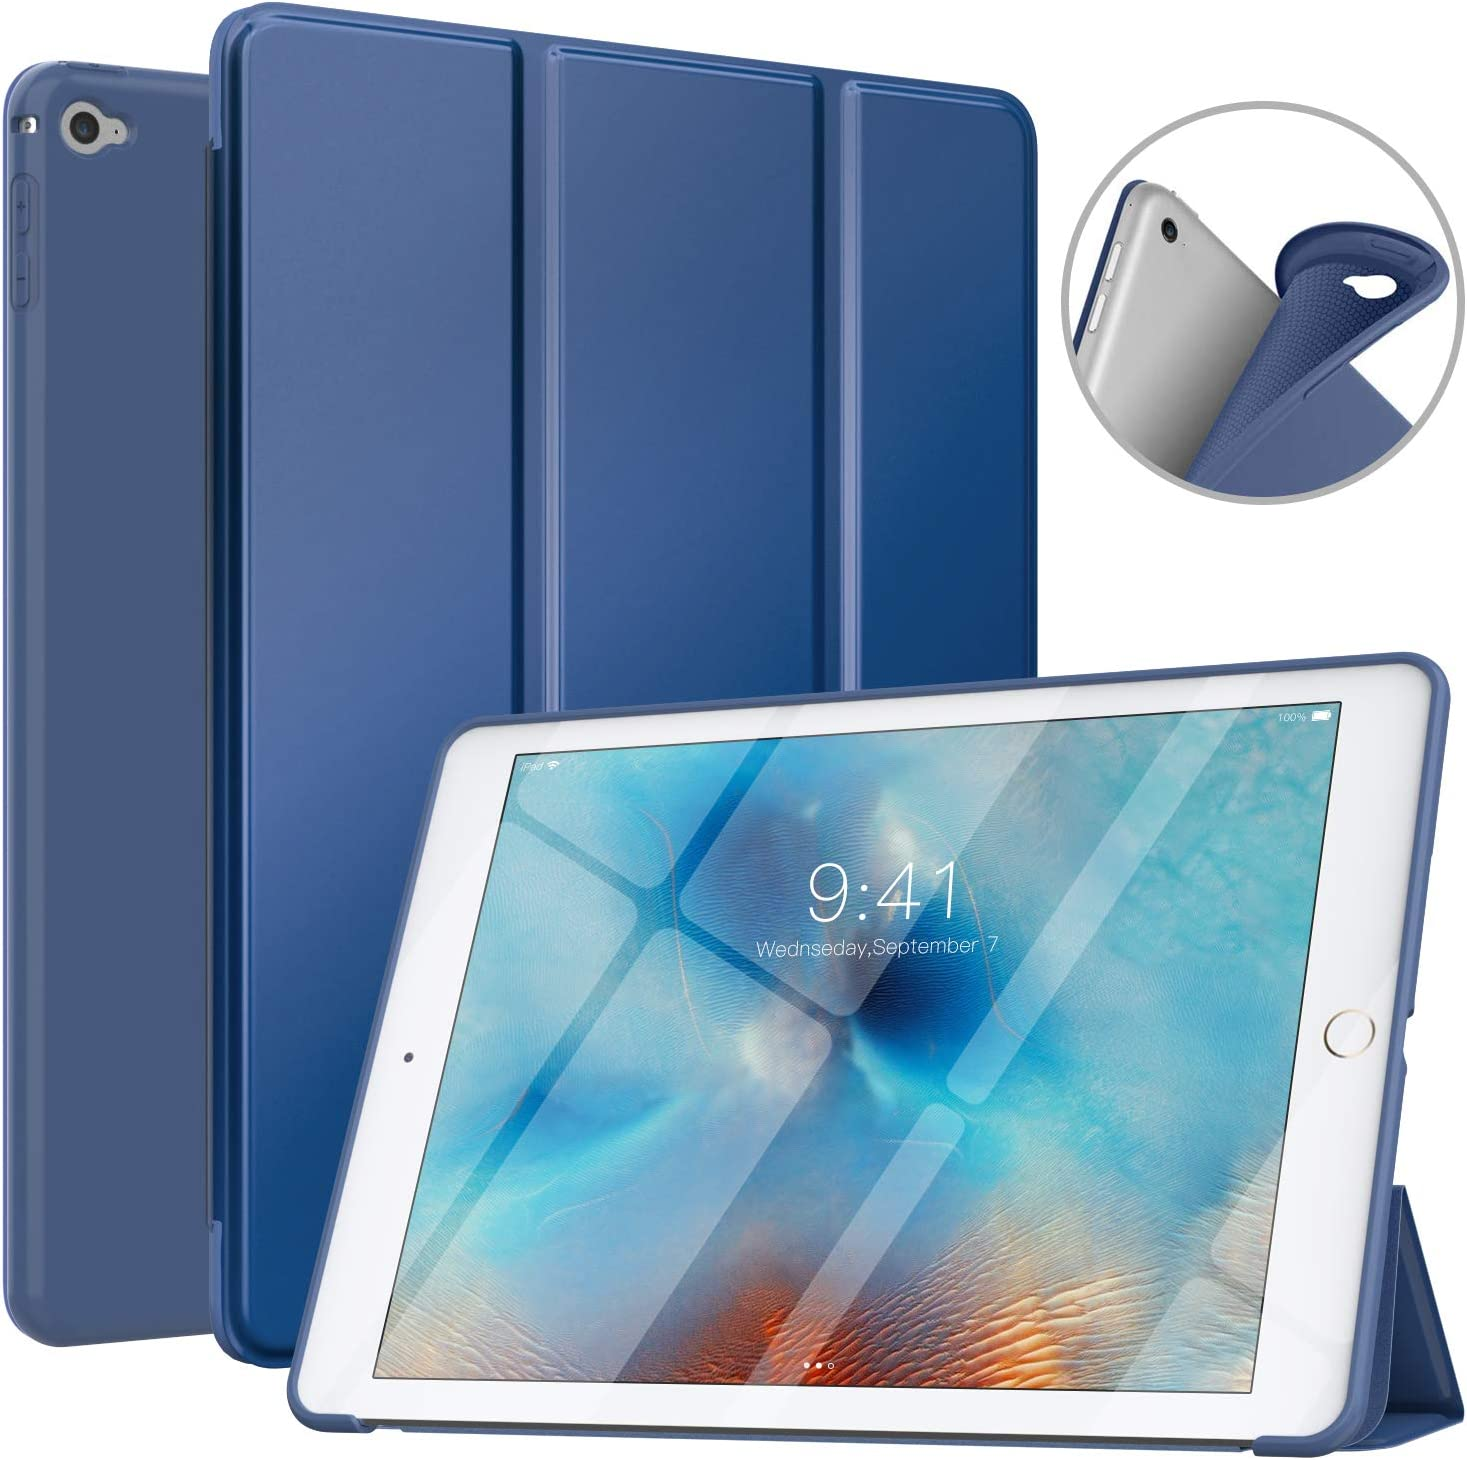 MoKo Case Fit iPad Air 2, Slim Smart Shell Stand Folio Case with Soft TPU Back Cover Compatible with iPad Air 2 9.7